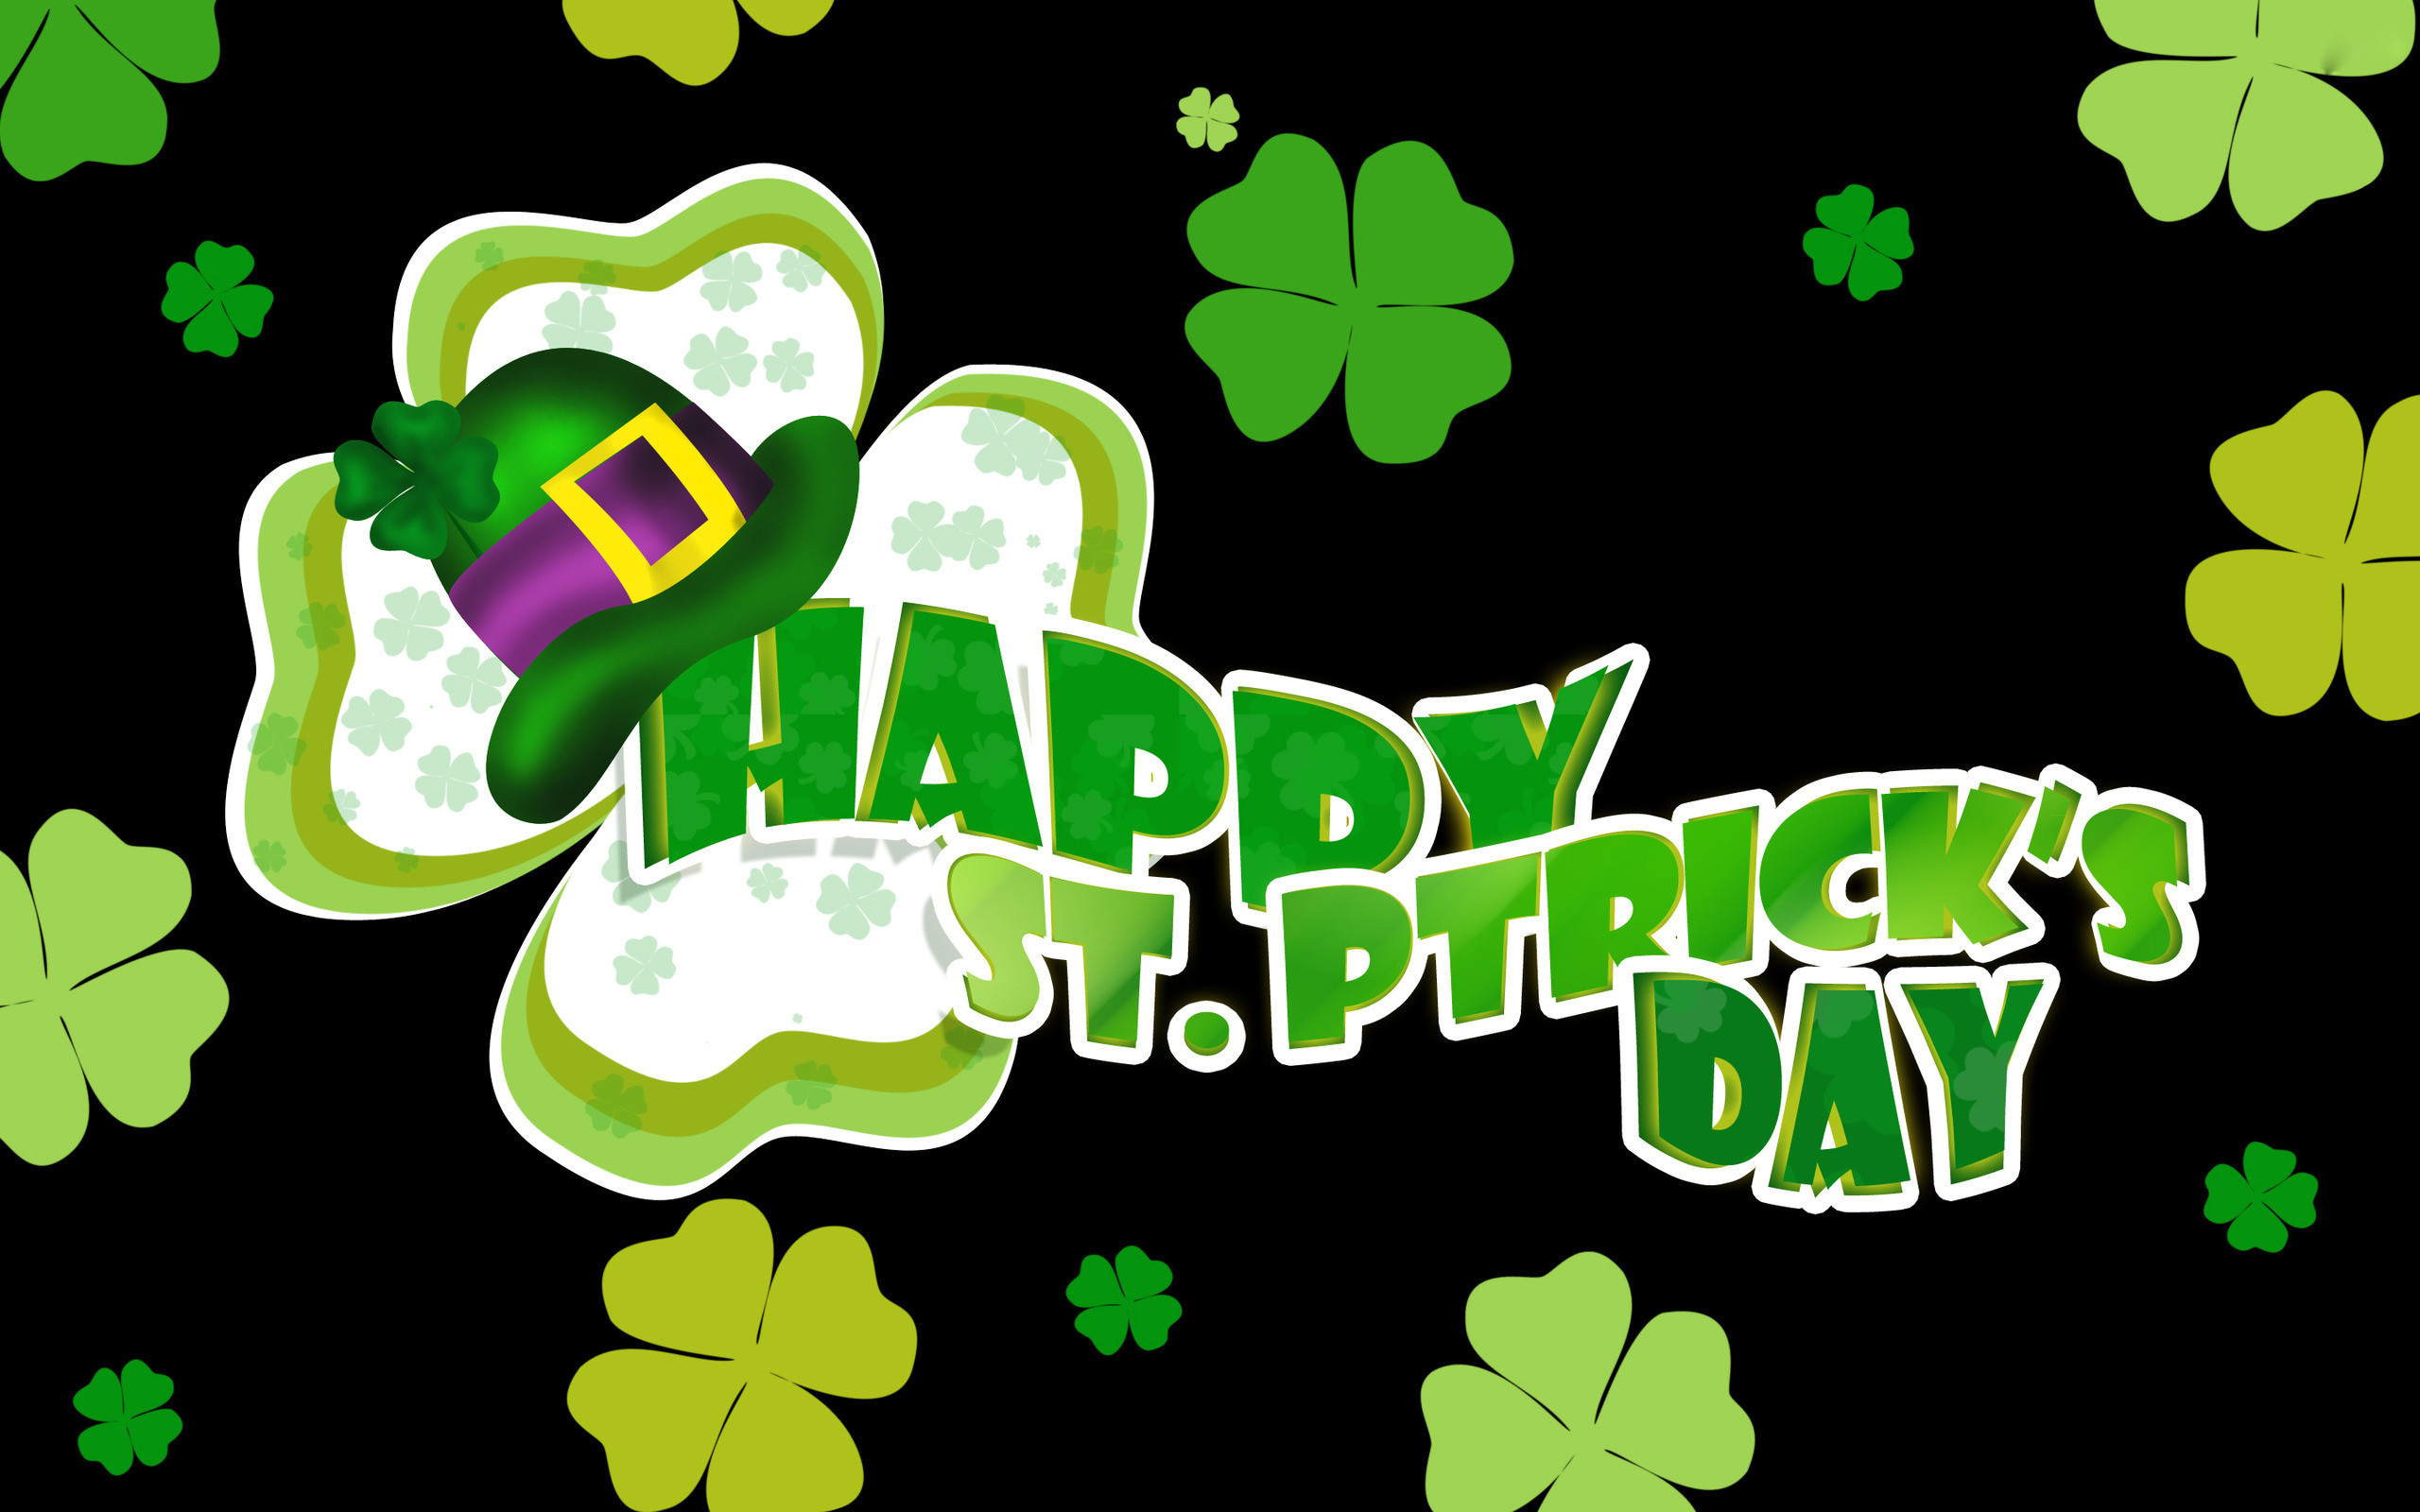 2560x1600 happy st patricks day wallpapers images hd wallpapers free 4k high  definition tablet mac desktop images display digital photos 2560×1600  Wallpaper HD